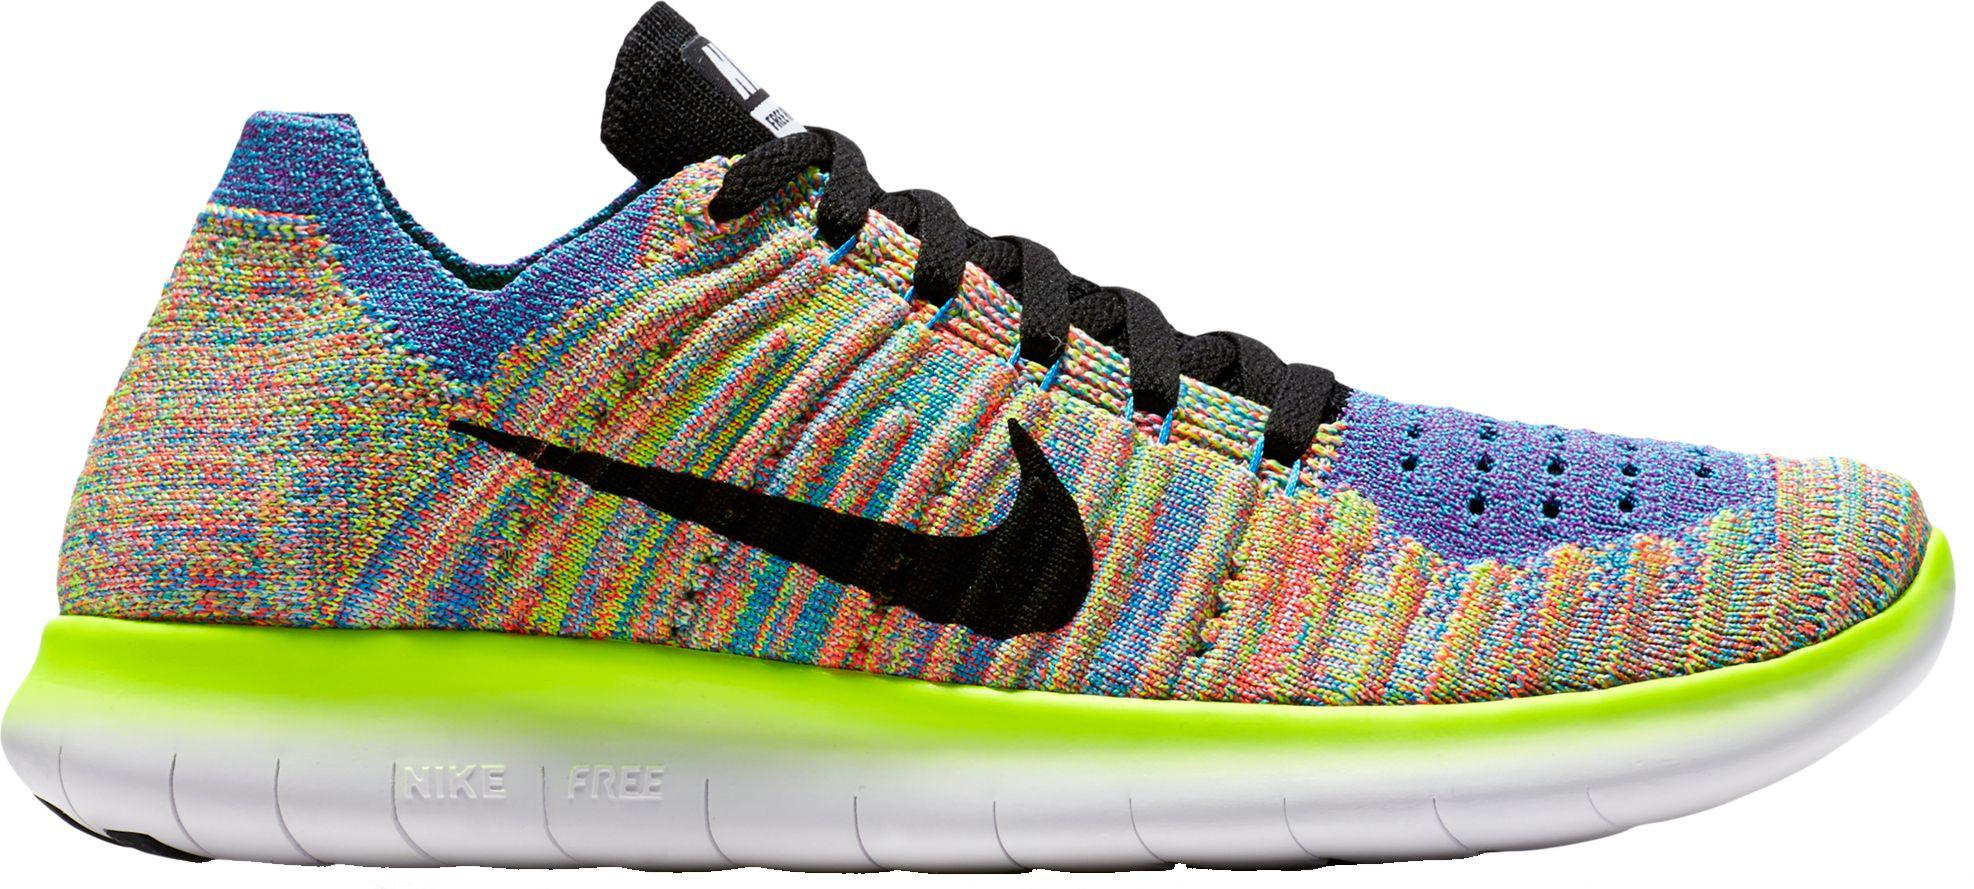 4c99889b06f6 Nike - Multicolor Free Rn Flyknit Running Shoes for Men - Lyst